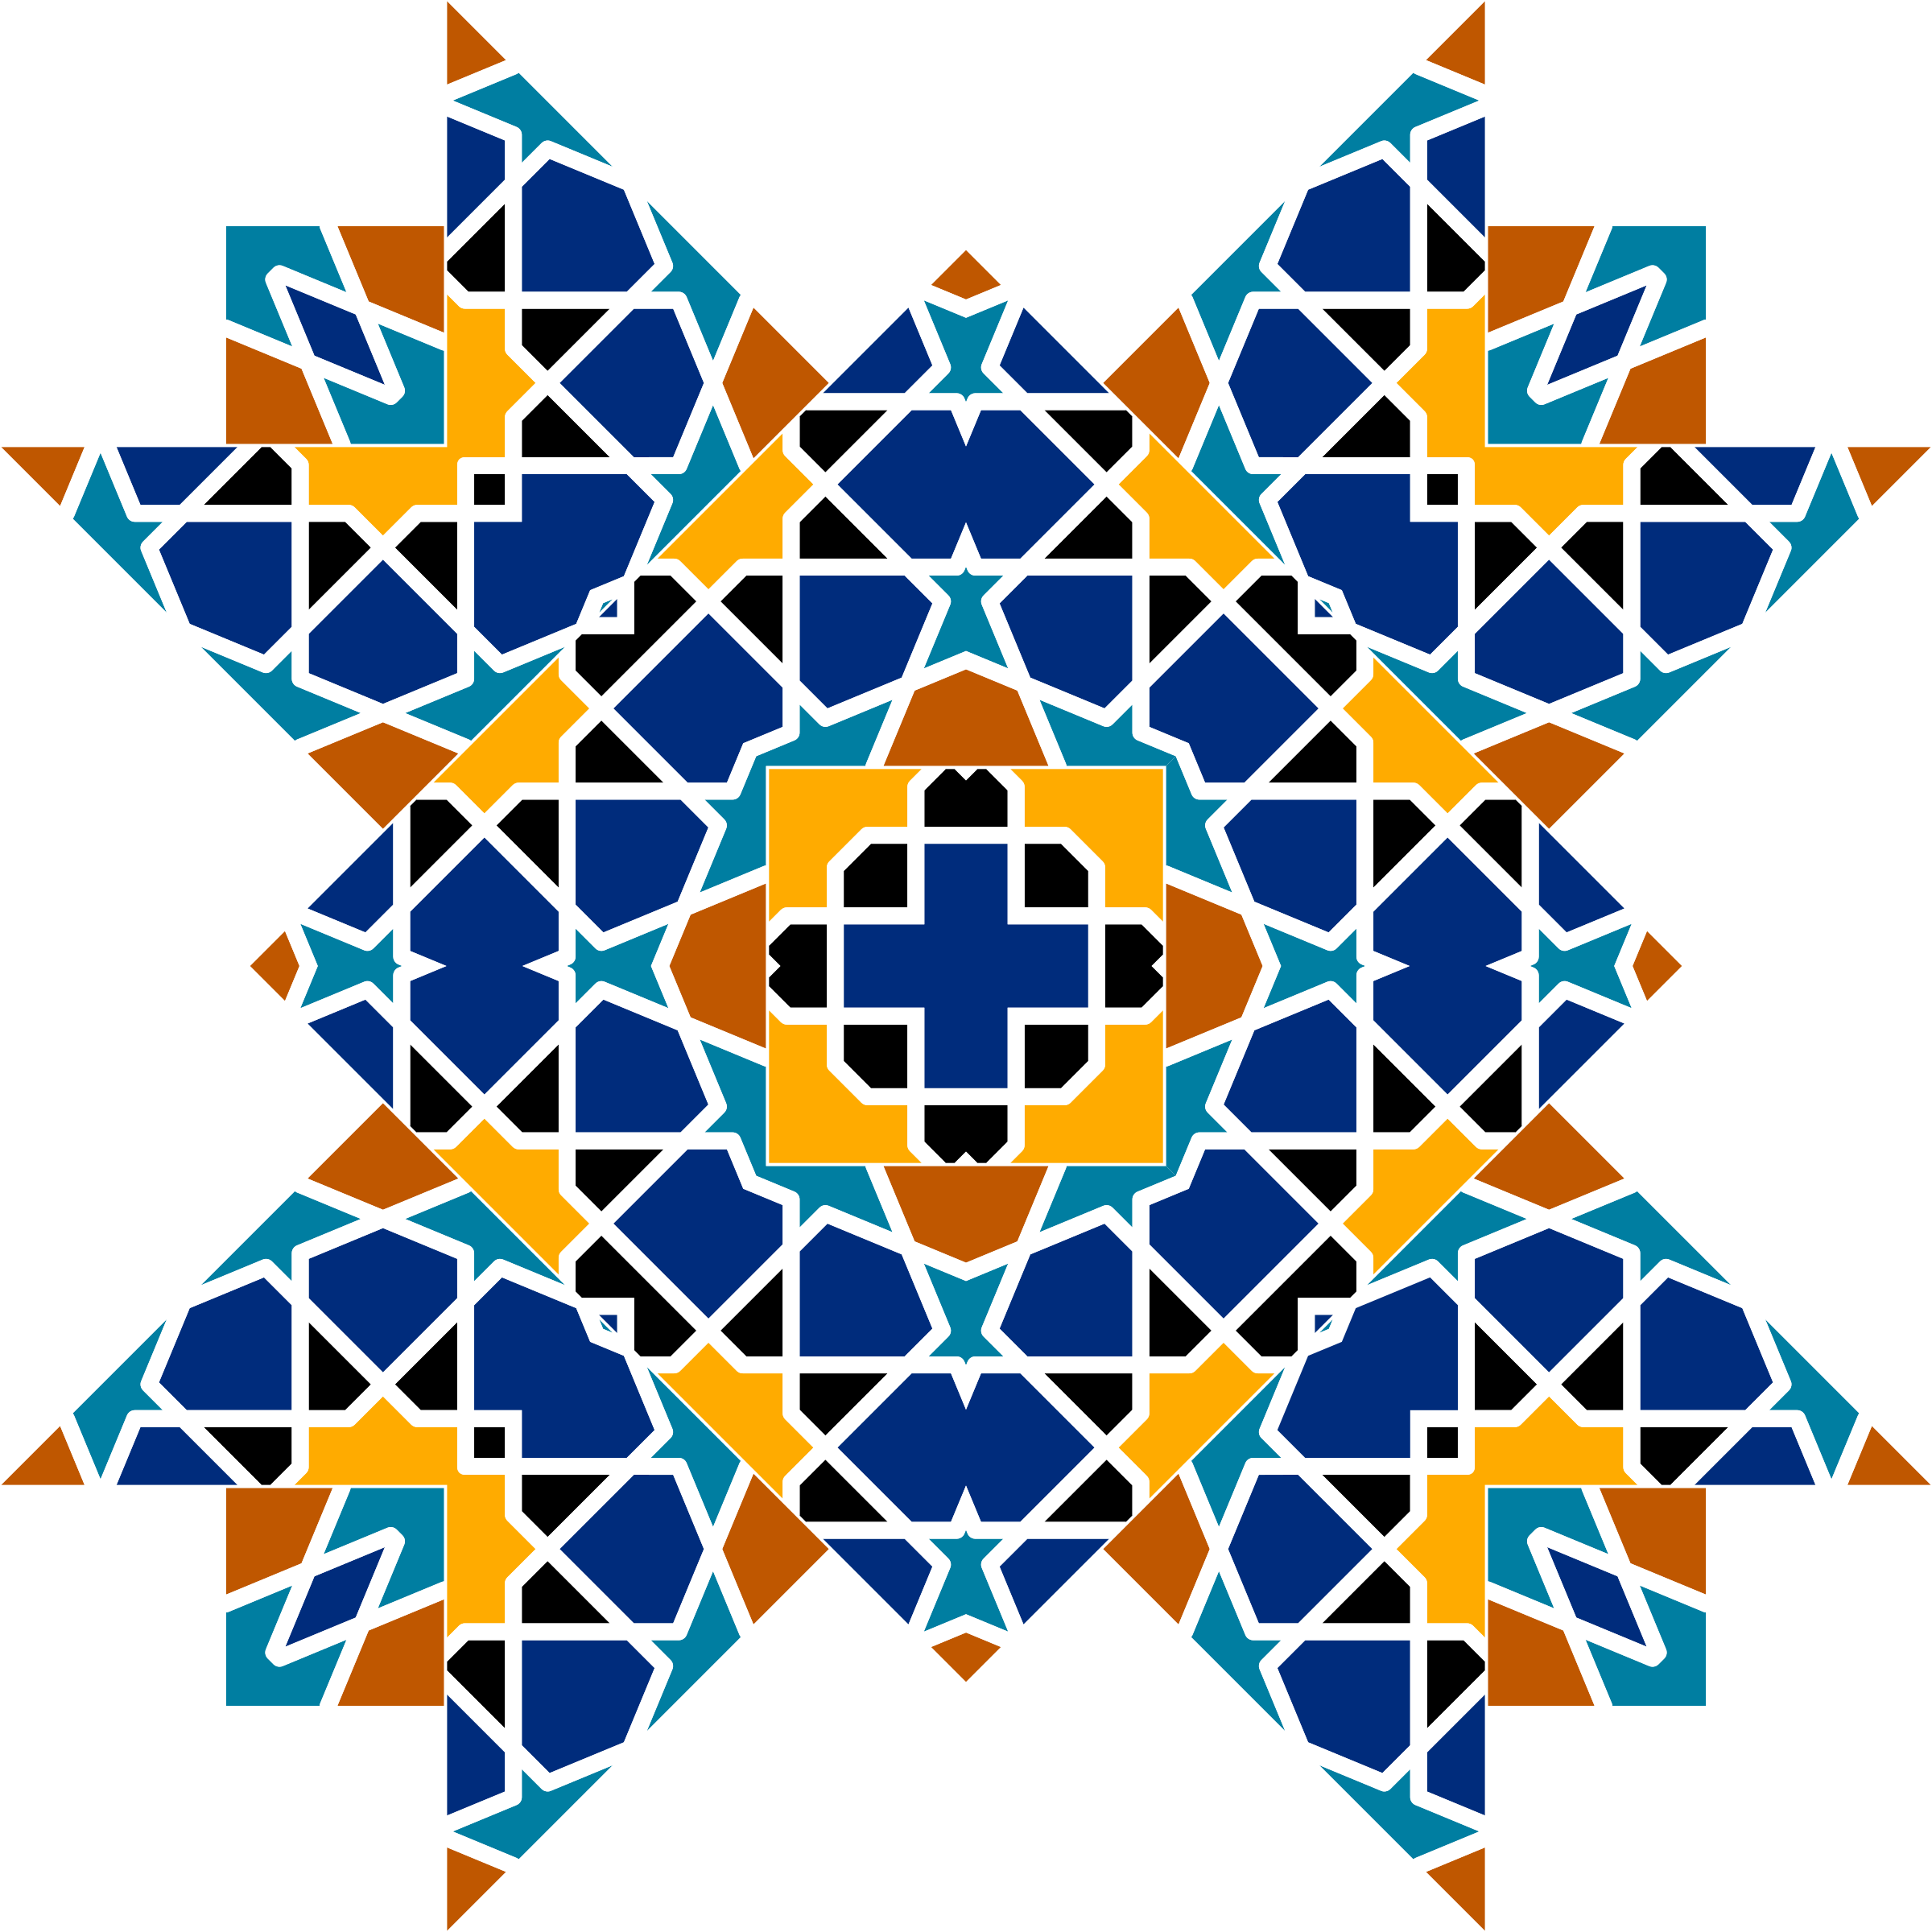 Islamic Geometric Tile 3 by GDJ